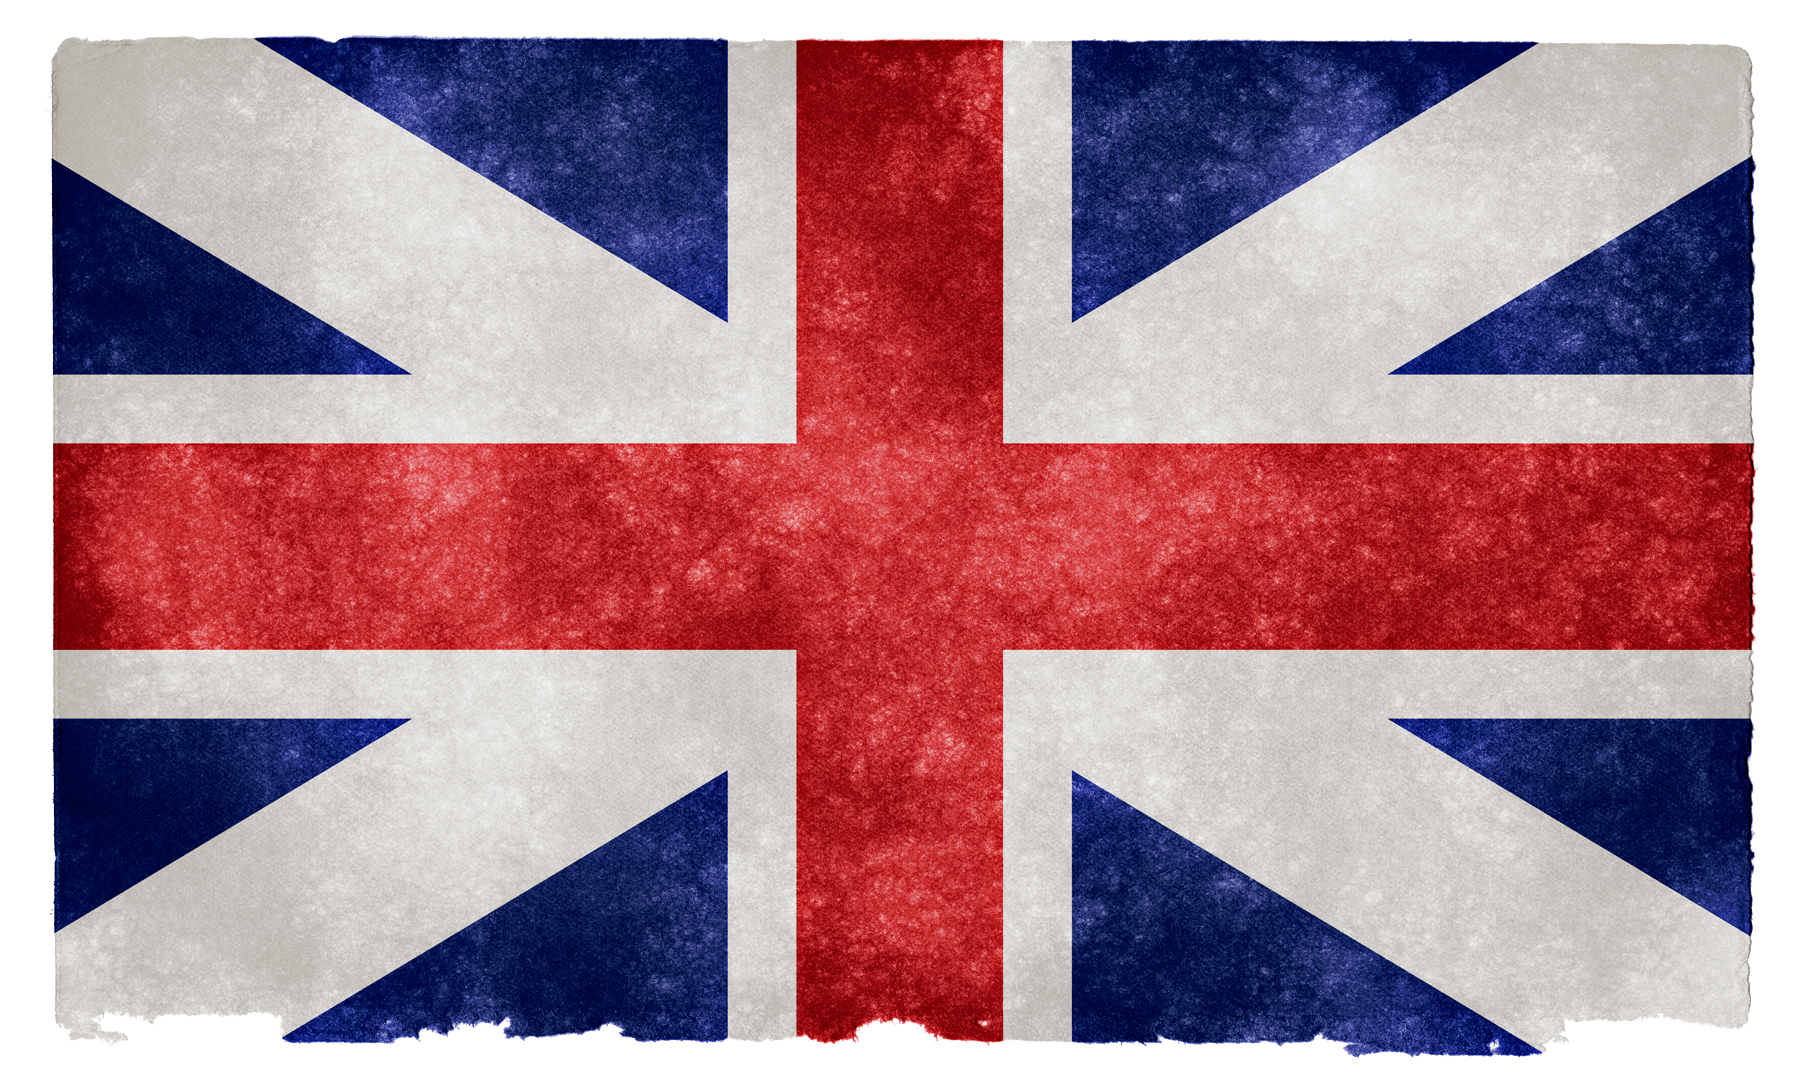 British Union Grunge Flag, Aged, Resource, Jack, Kingdom, HQ Photo